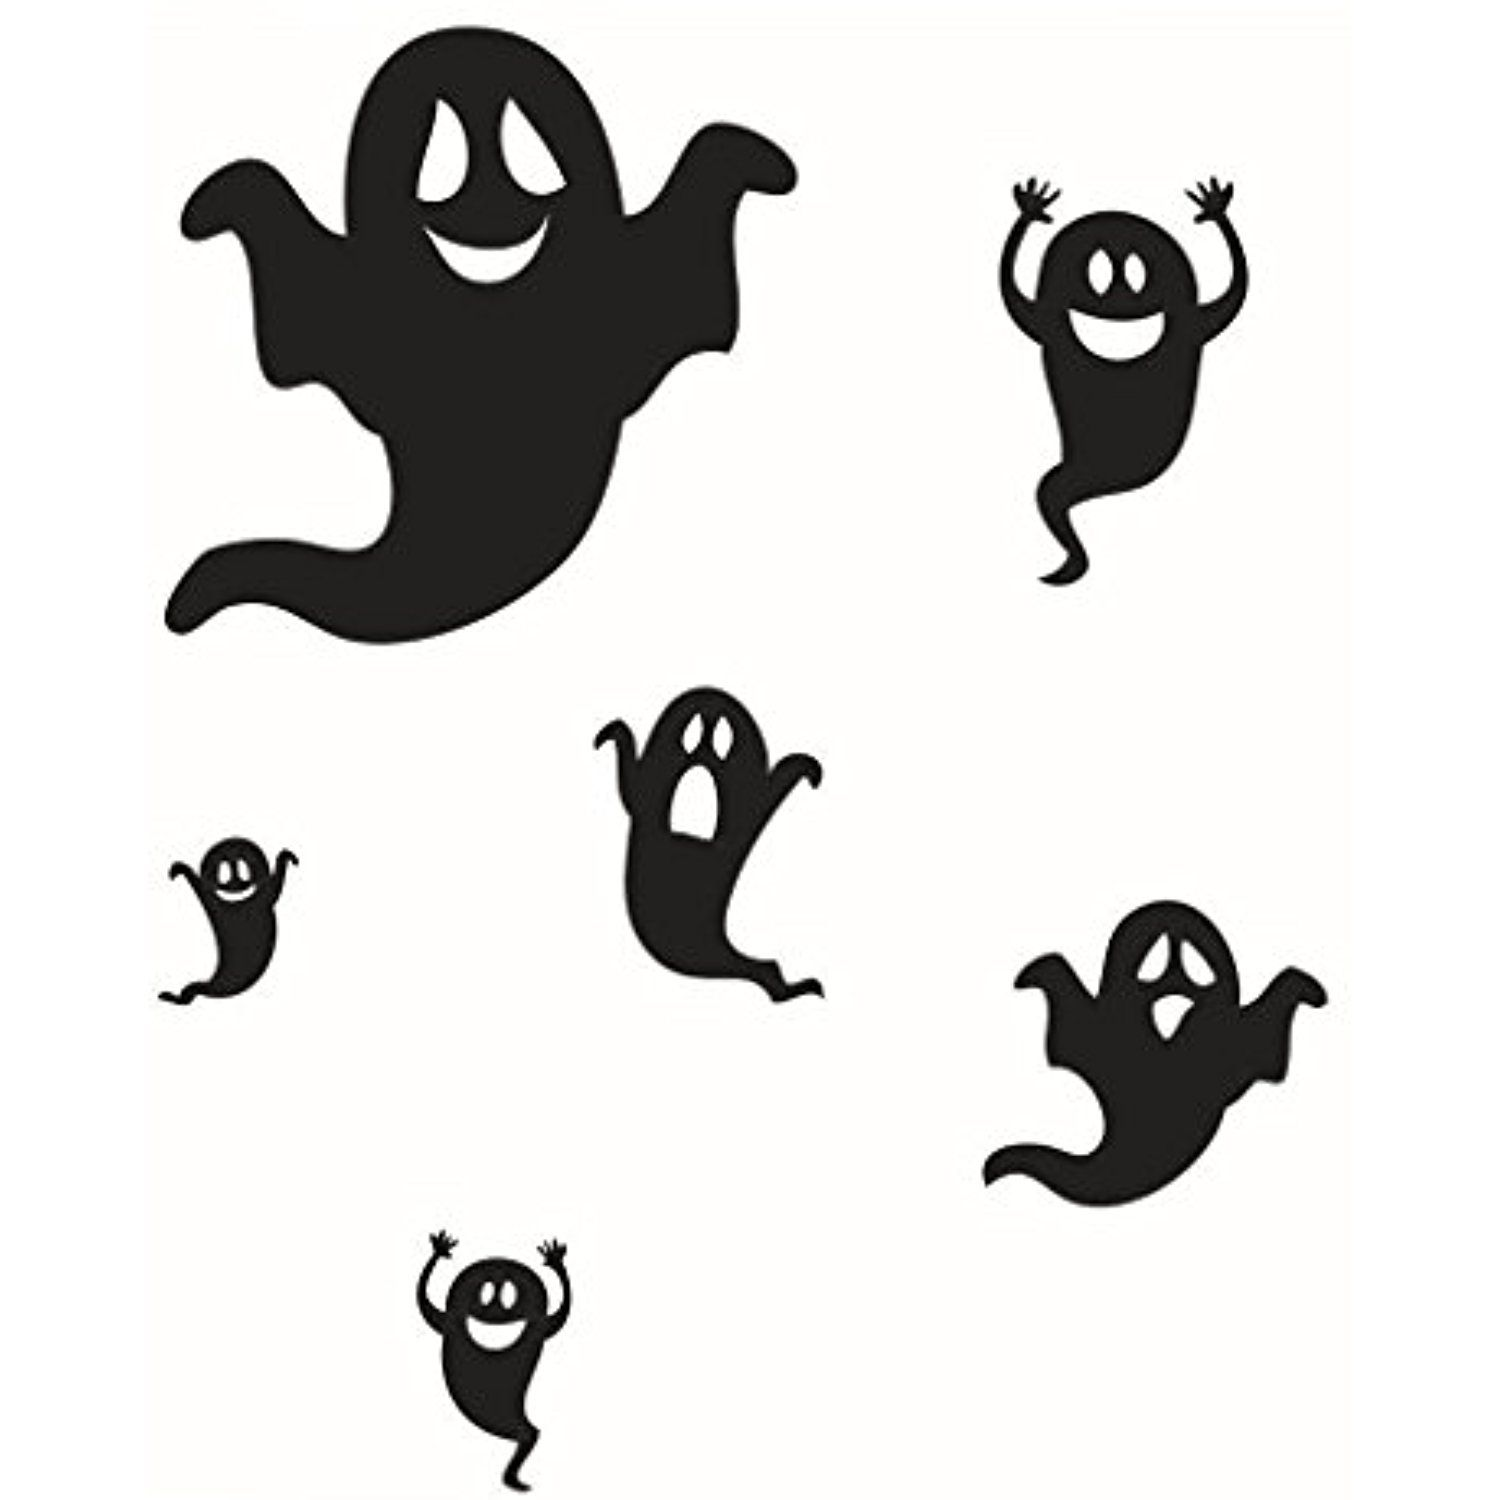 Besttopshop flying ghosts wall stickers x inches